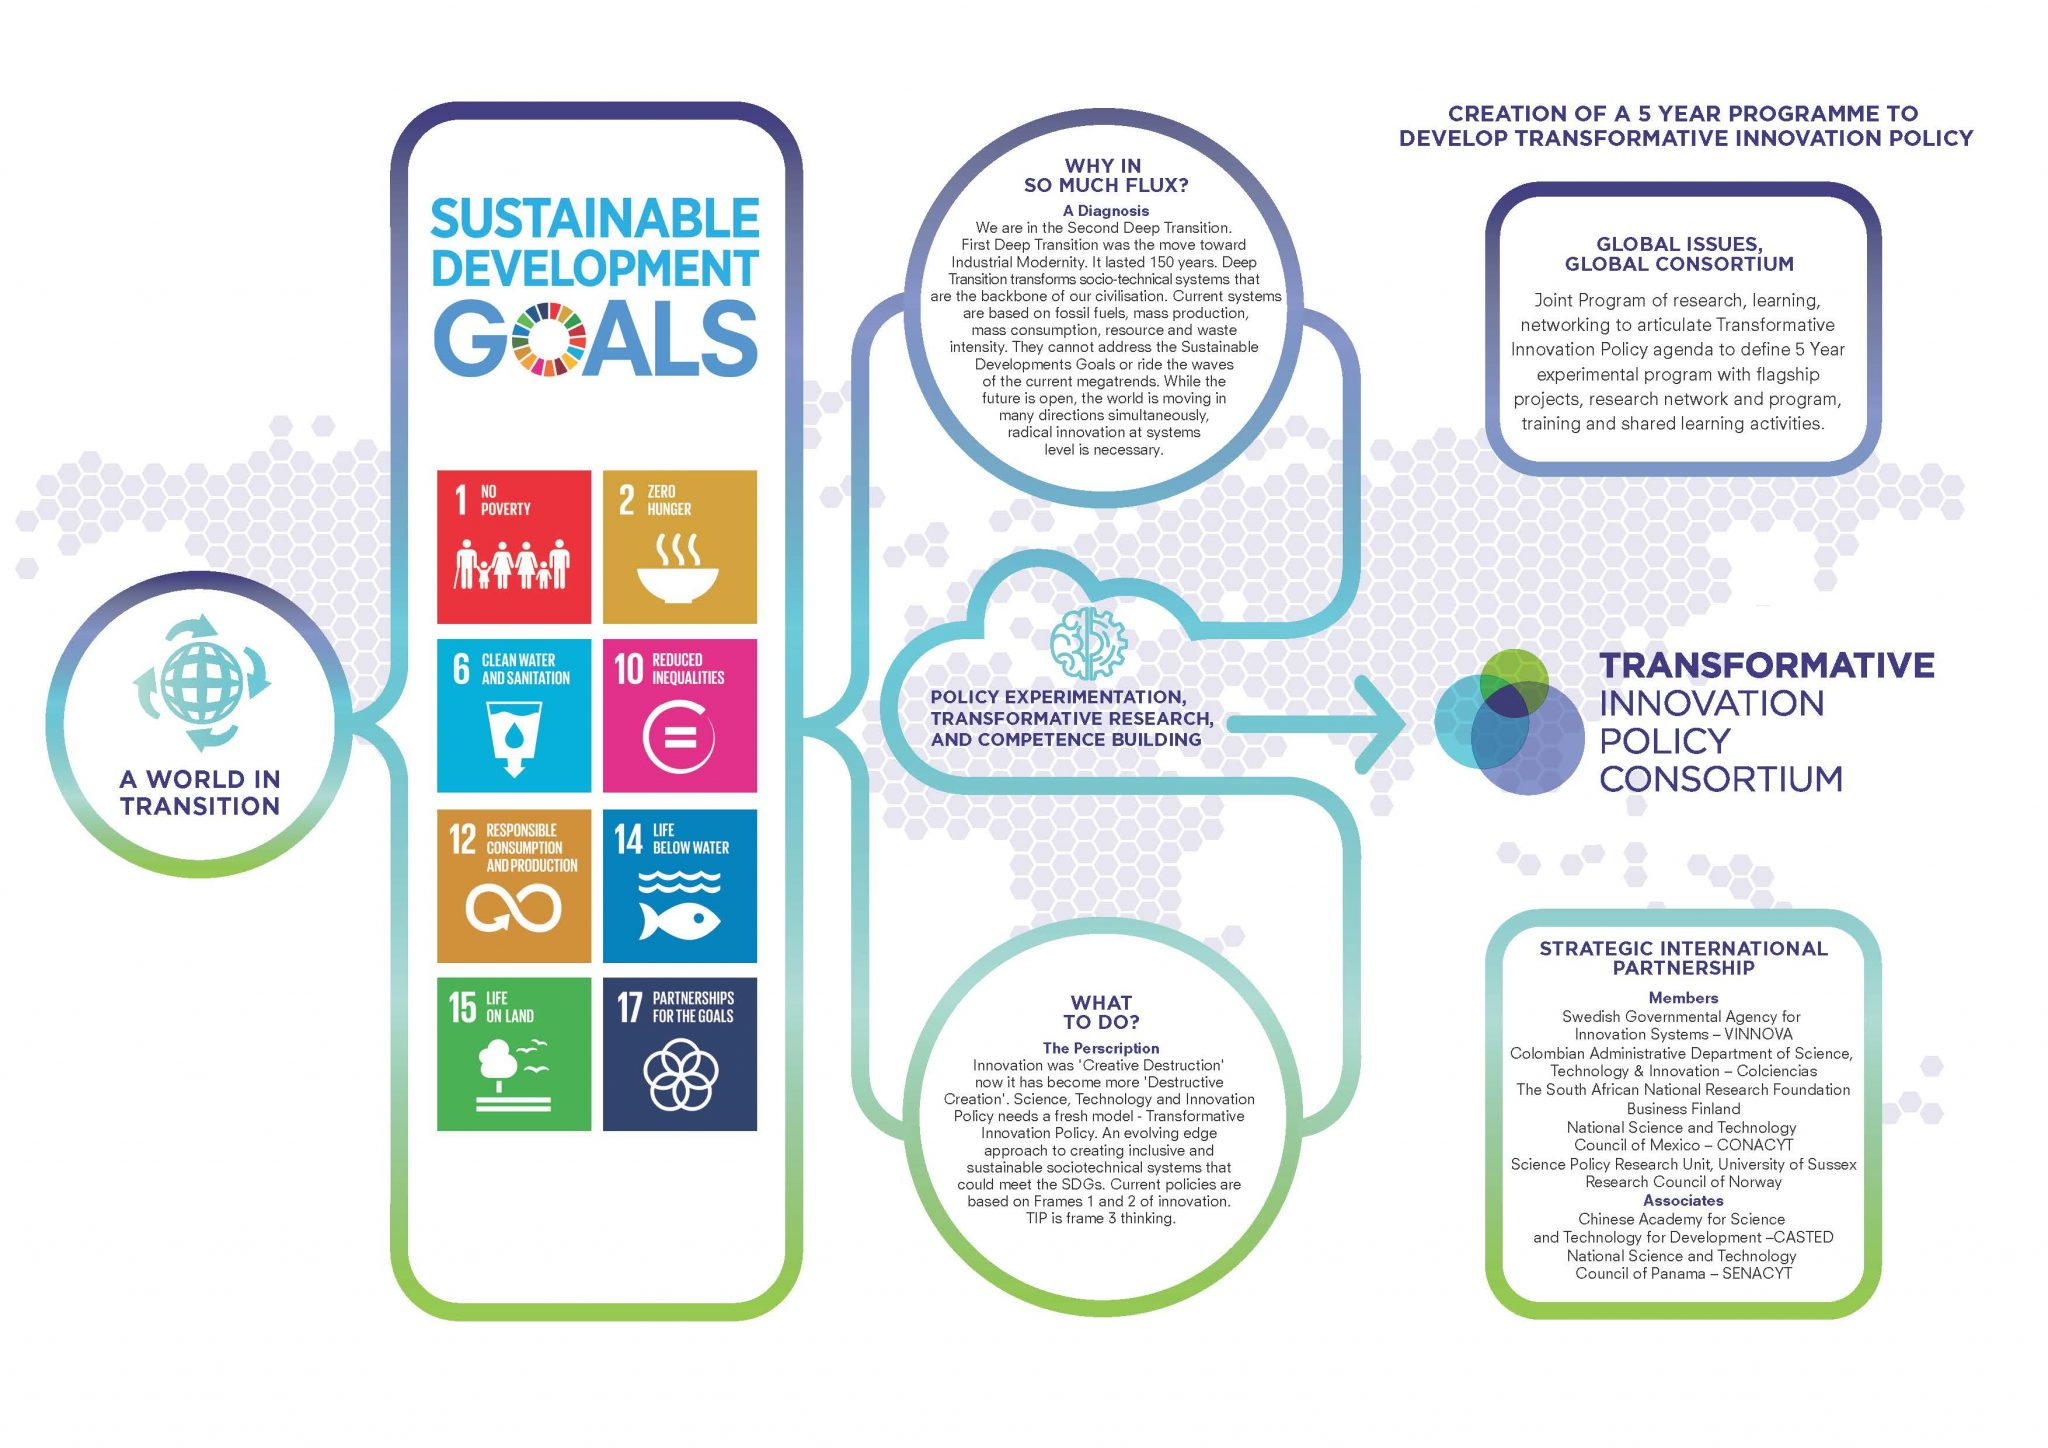 THE SUSTAINABLE DEVELOPMENT GOALS, TIPC